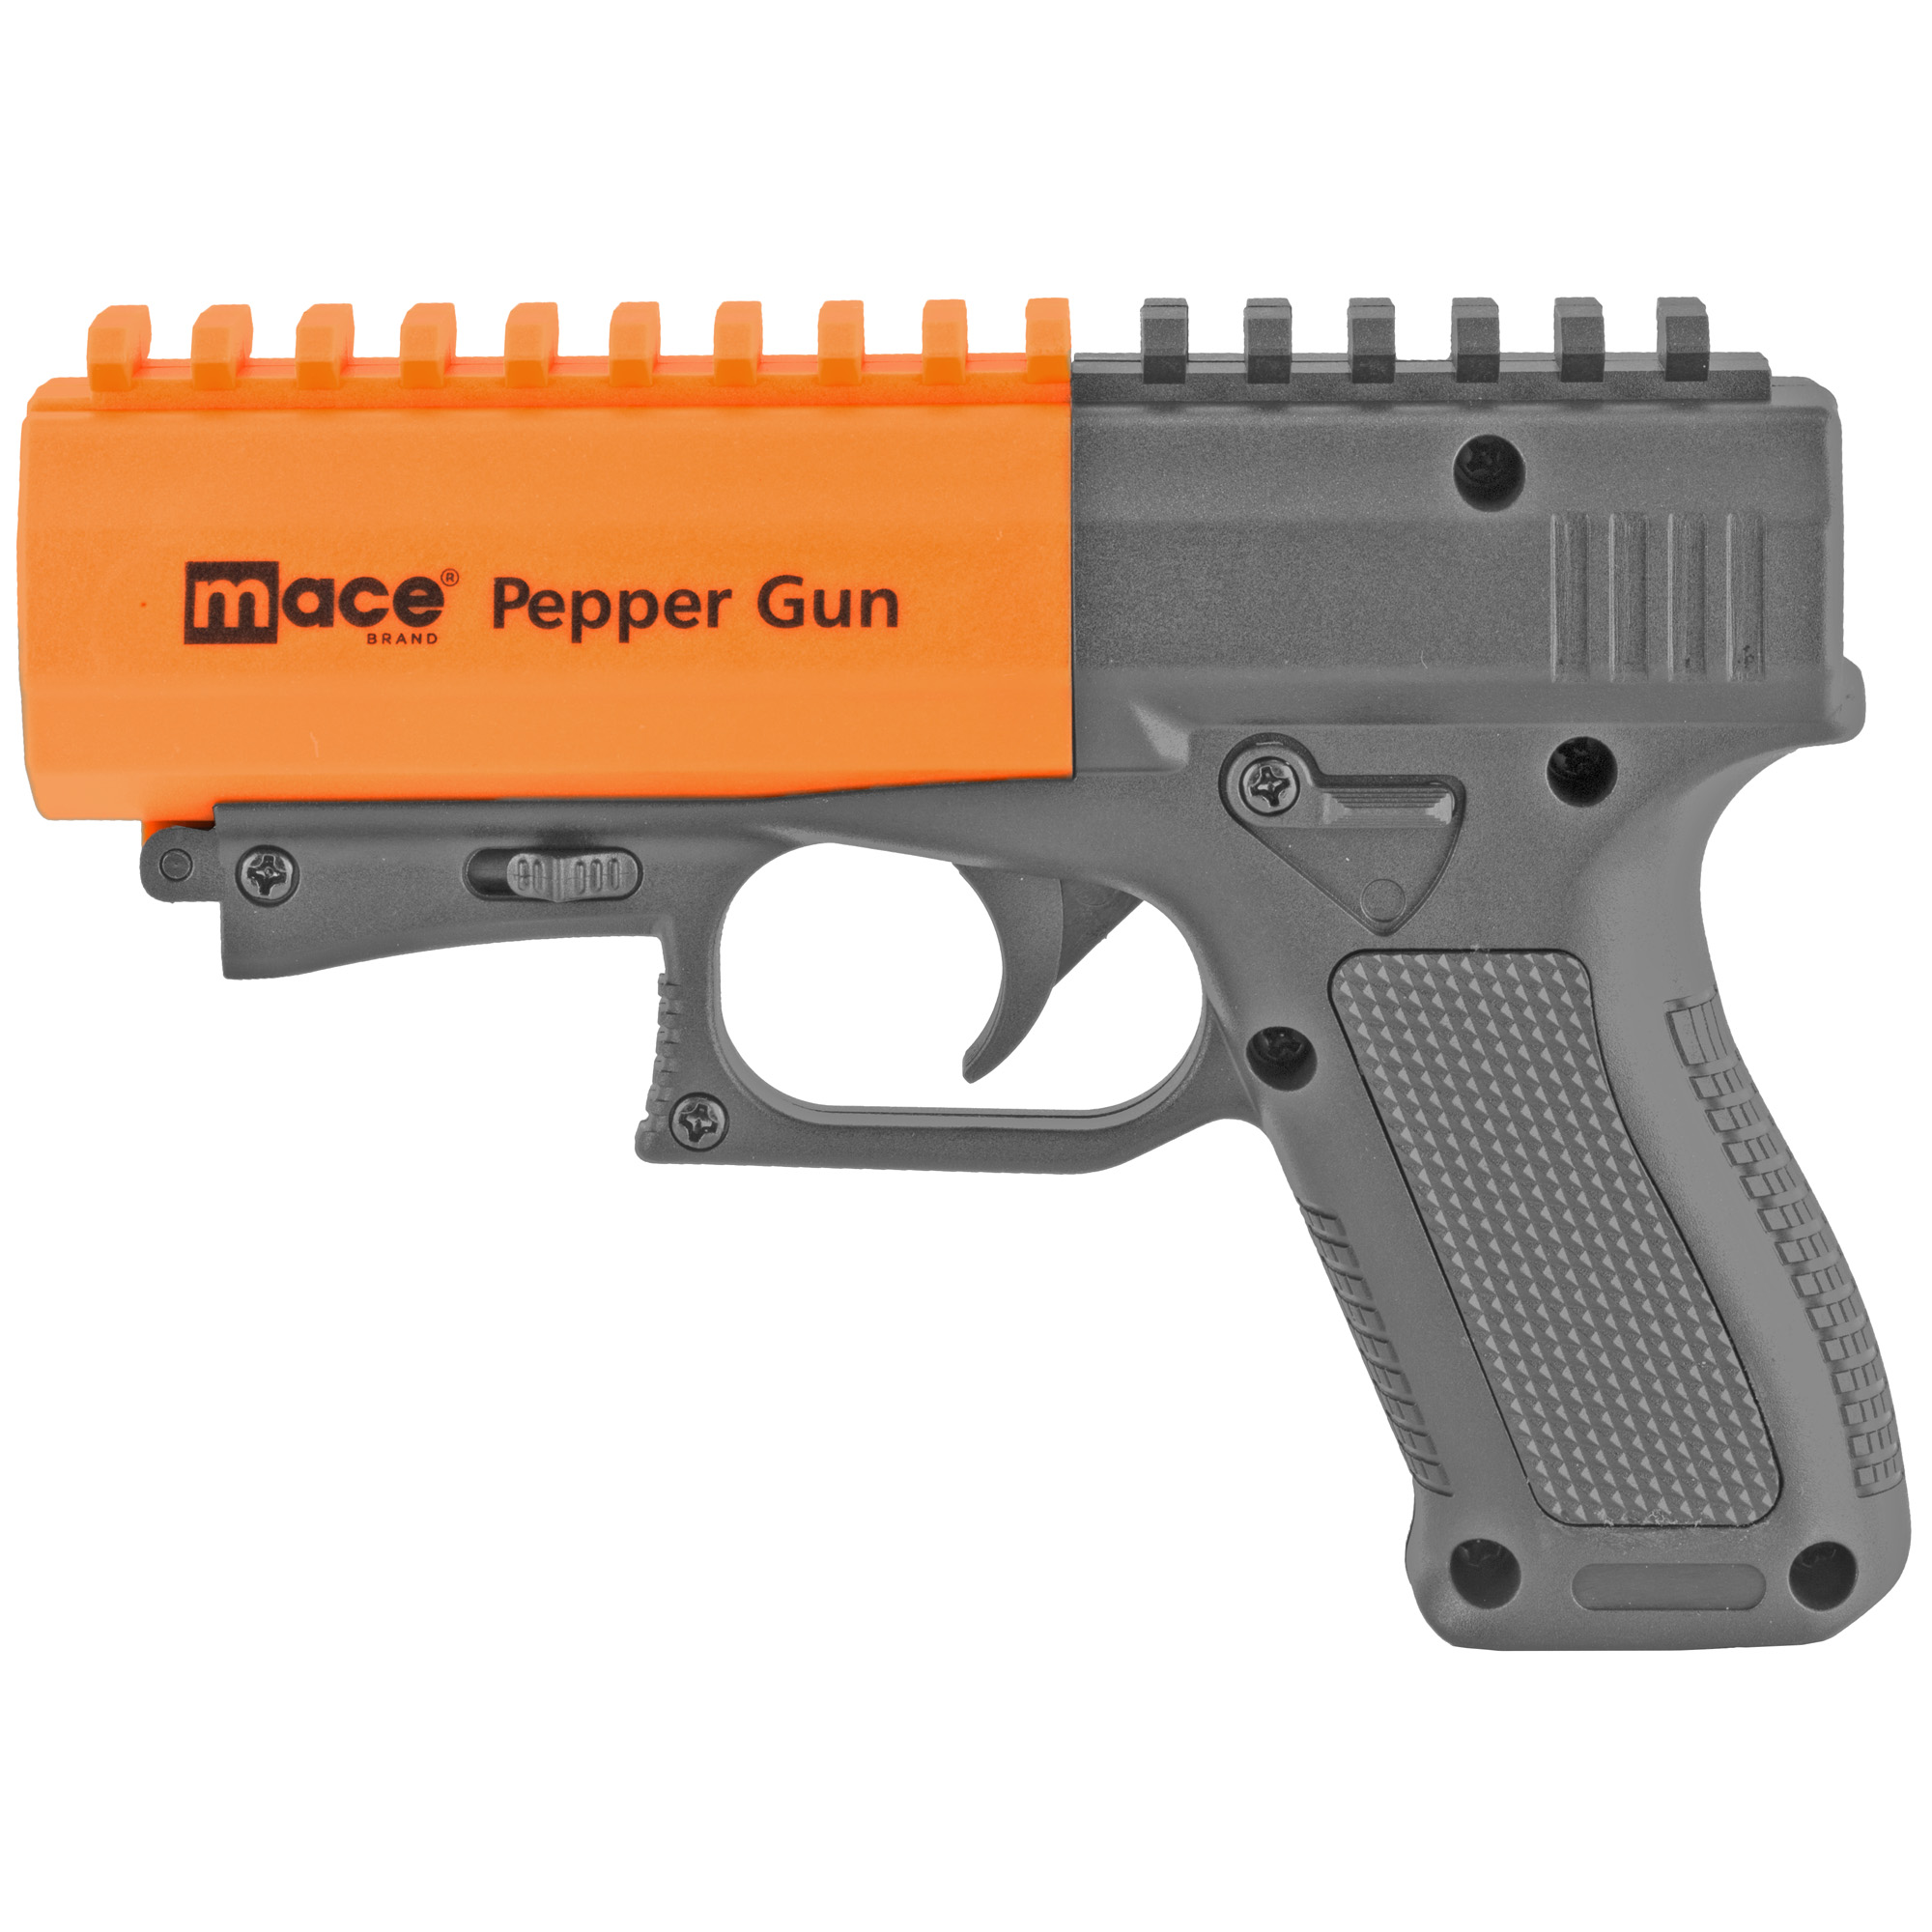 """Accurate and effective"""" the Pepper Gun 2.0 combines an advanced delivery system with a powerful formula to protect you from long-range threats. With an integrated Picatinny rail"""" you can attach other accessories to boost vision and targeting."""